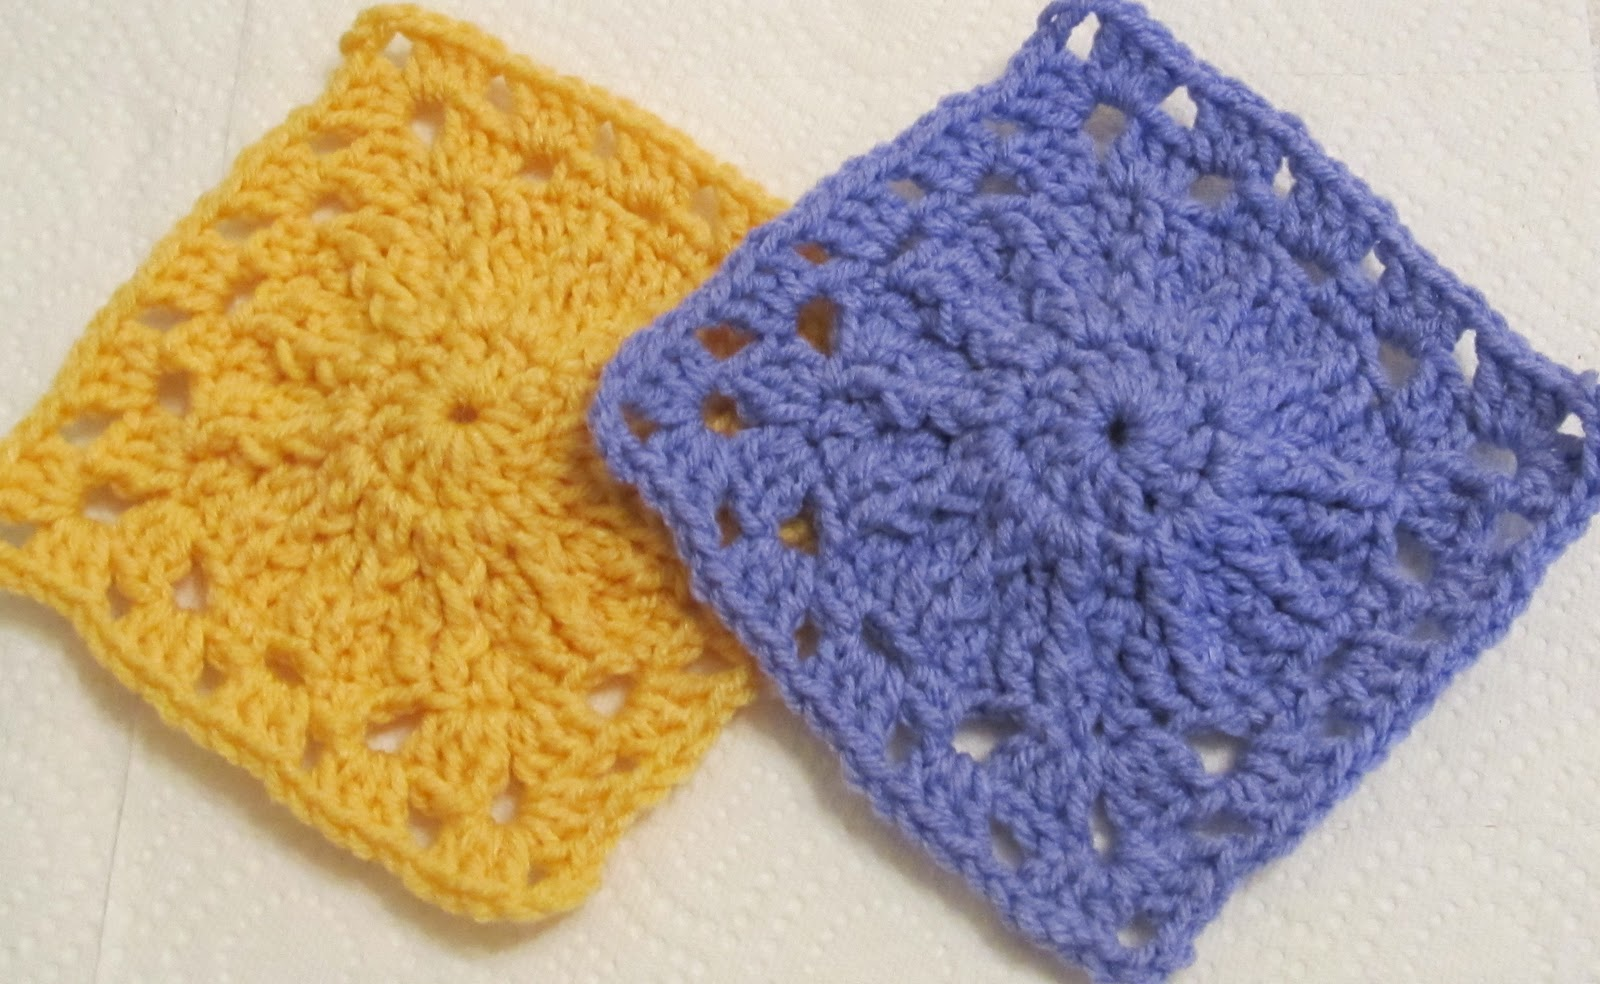 Crochet For Charity : SmoothFox Crochet and Knit: Please crochet some charity squares